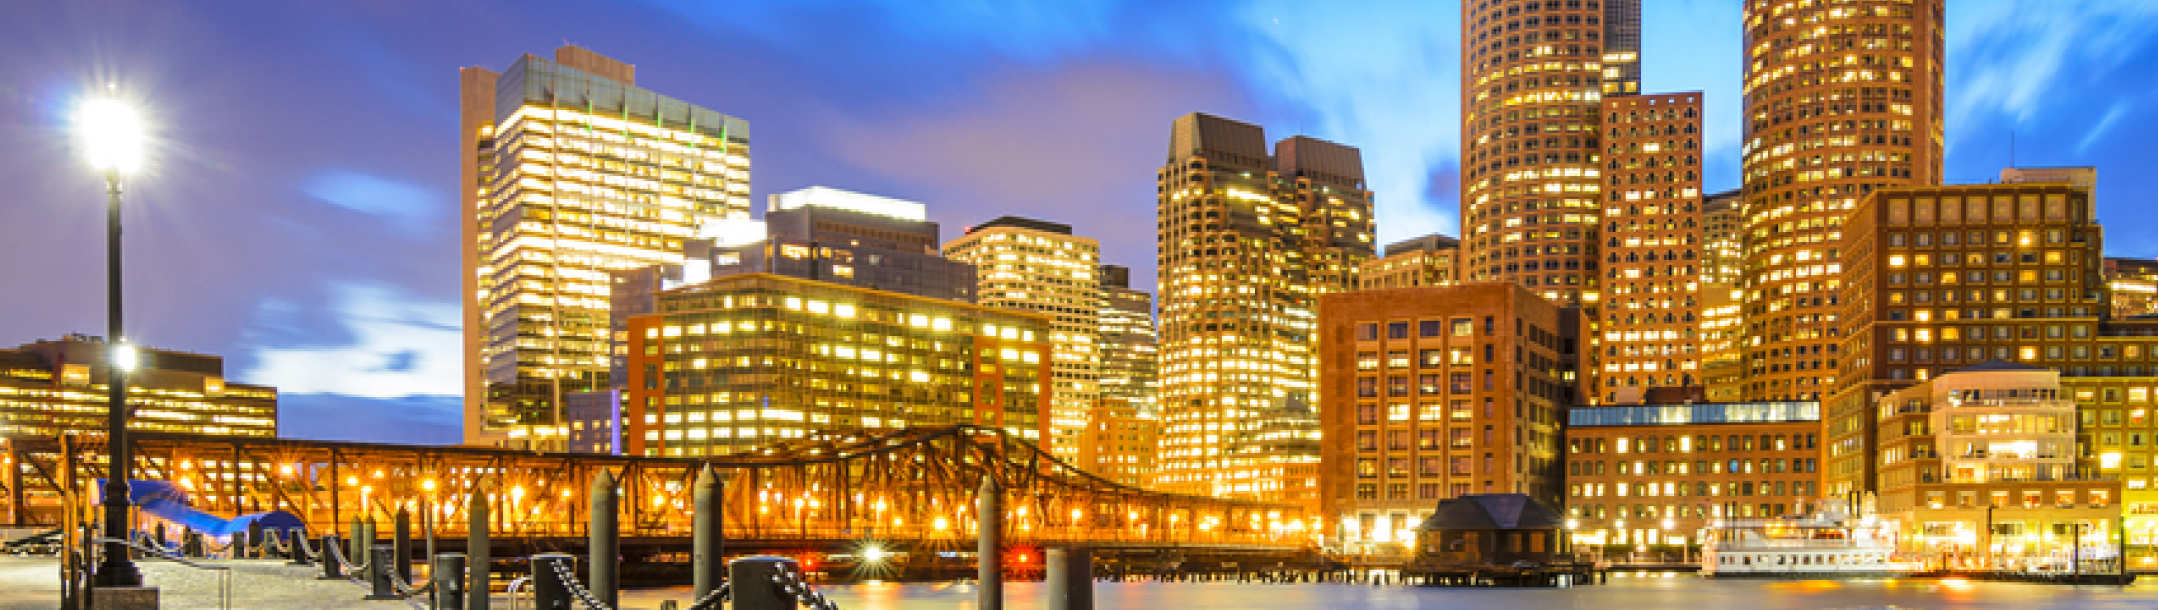 Boston city scape at night